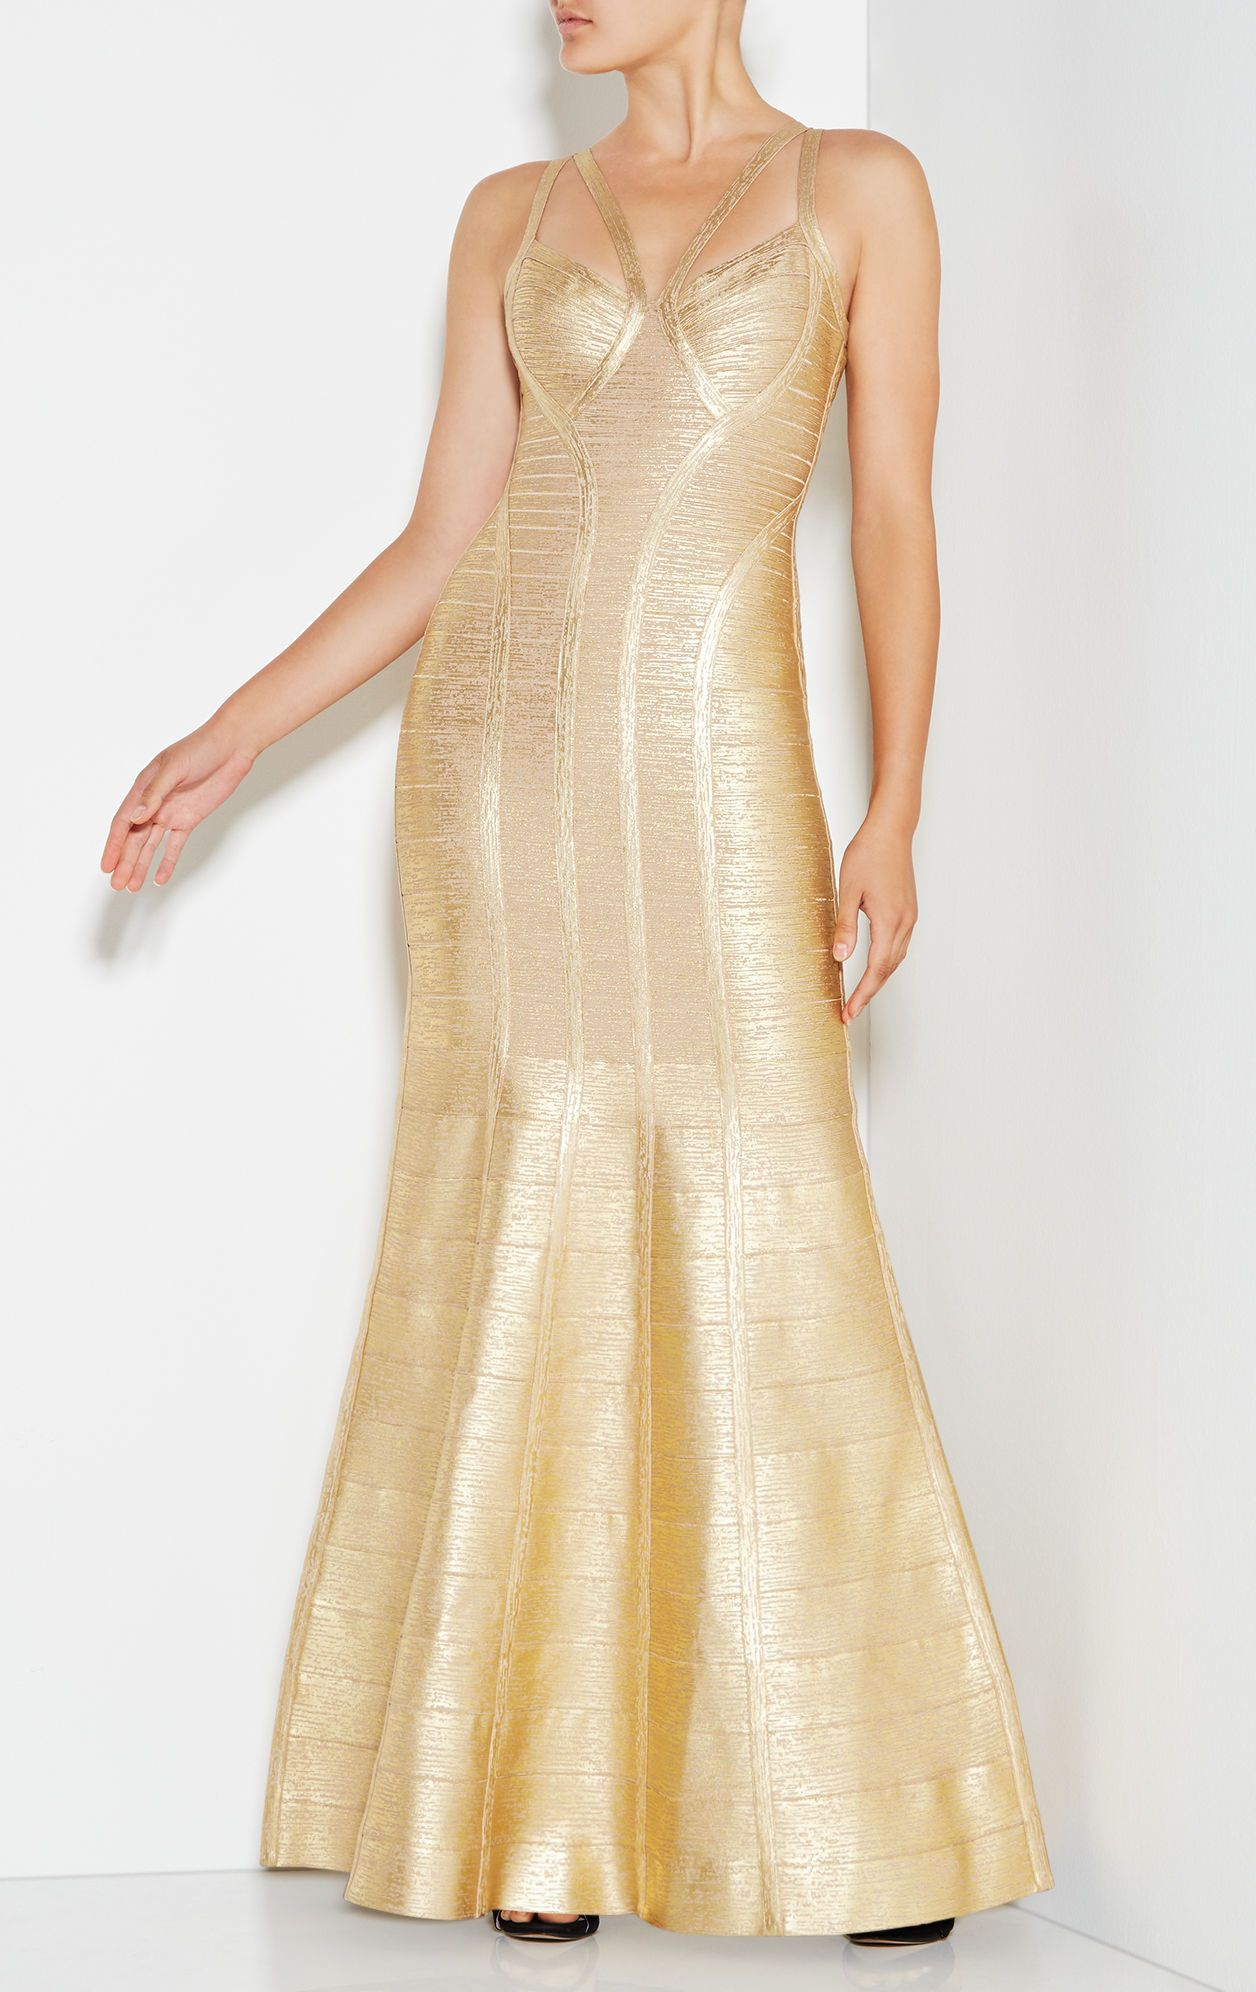 Gold herve leger long gold bandage dresses herve leger long